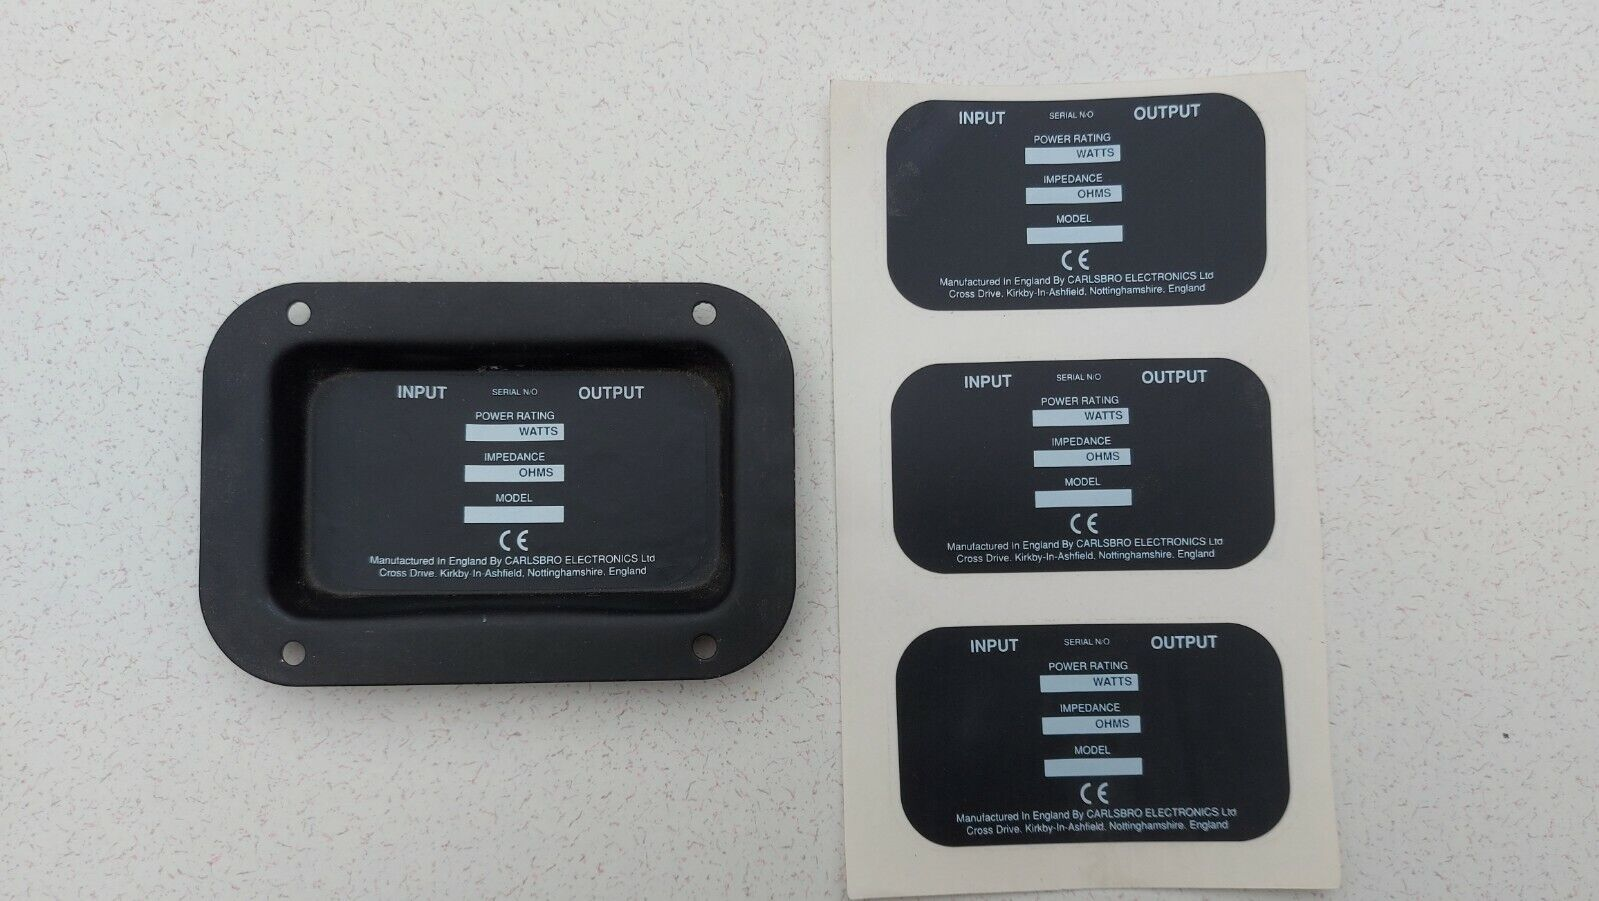 6 x Carlsbro Stickers for Fitting on Dual Output Speaker Back Plates